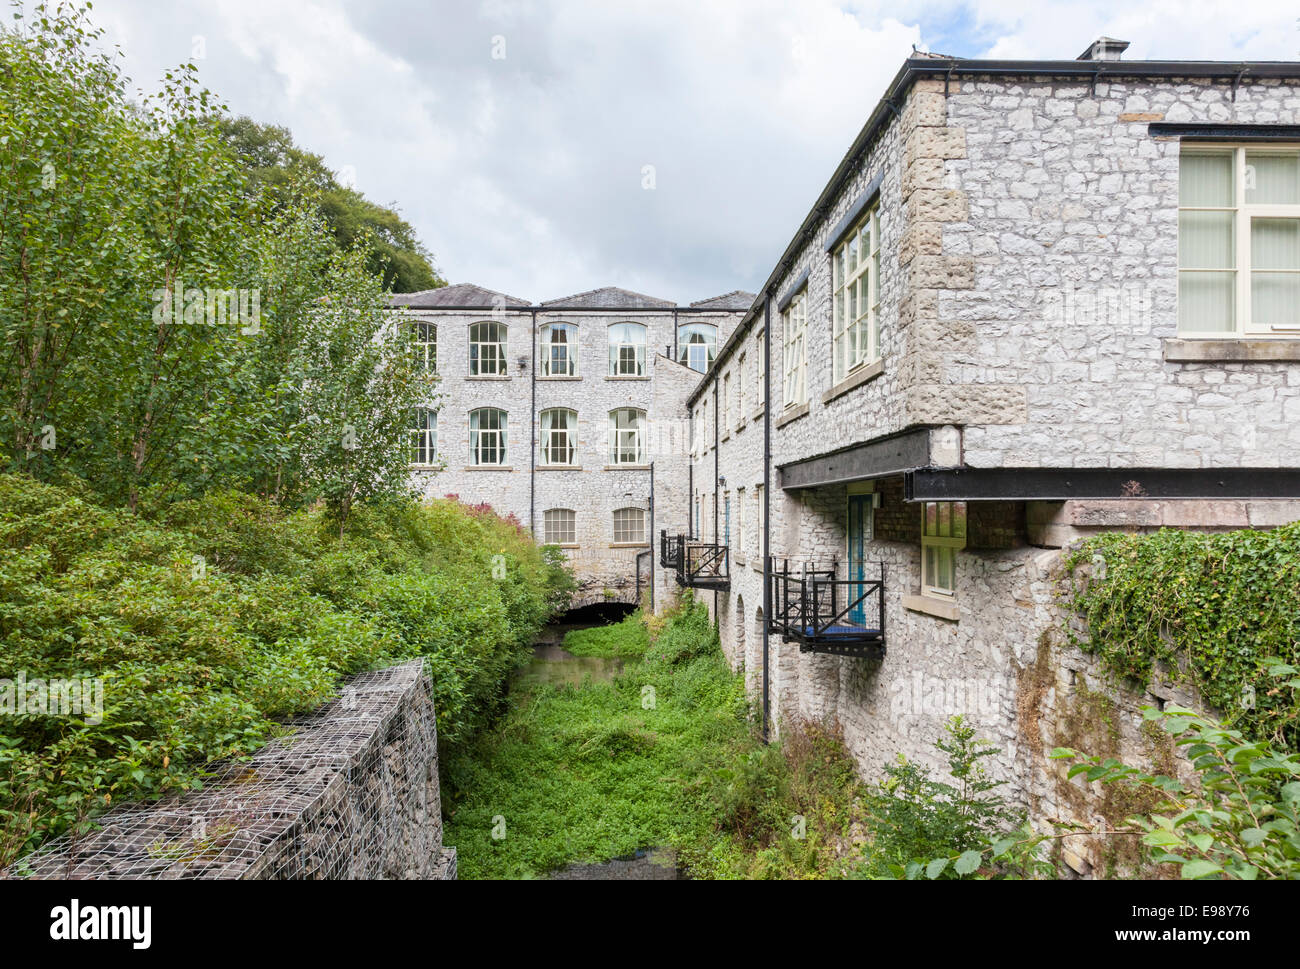 Building conversion. Litton Mill, now converted to a block of apartments, Derbyshire, England, UK - Stock Image